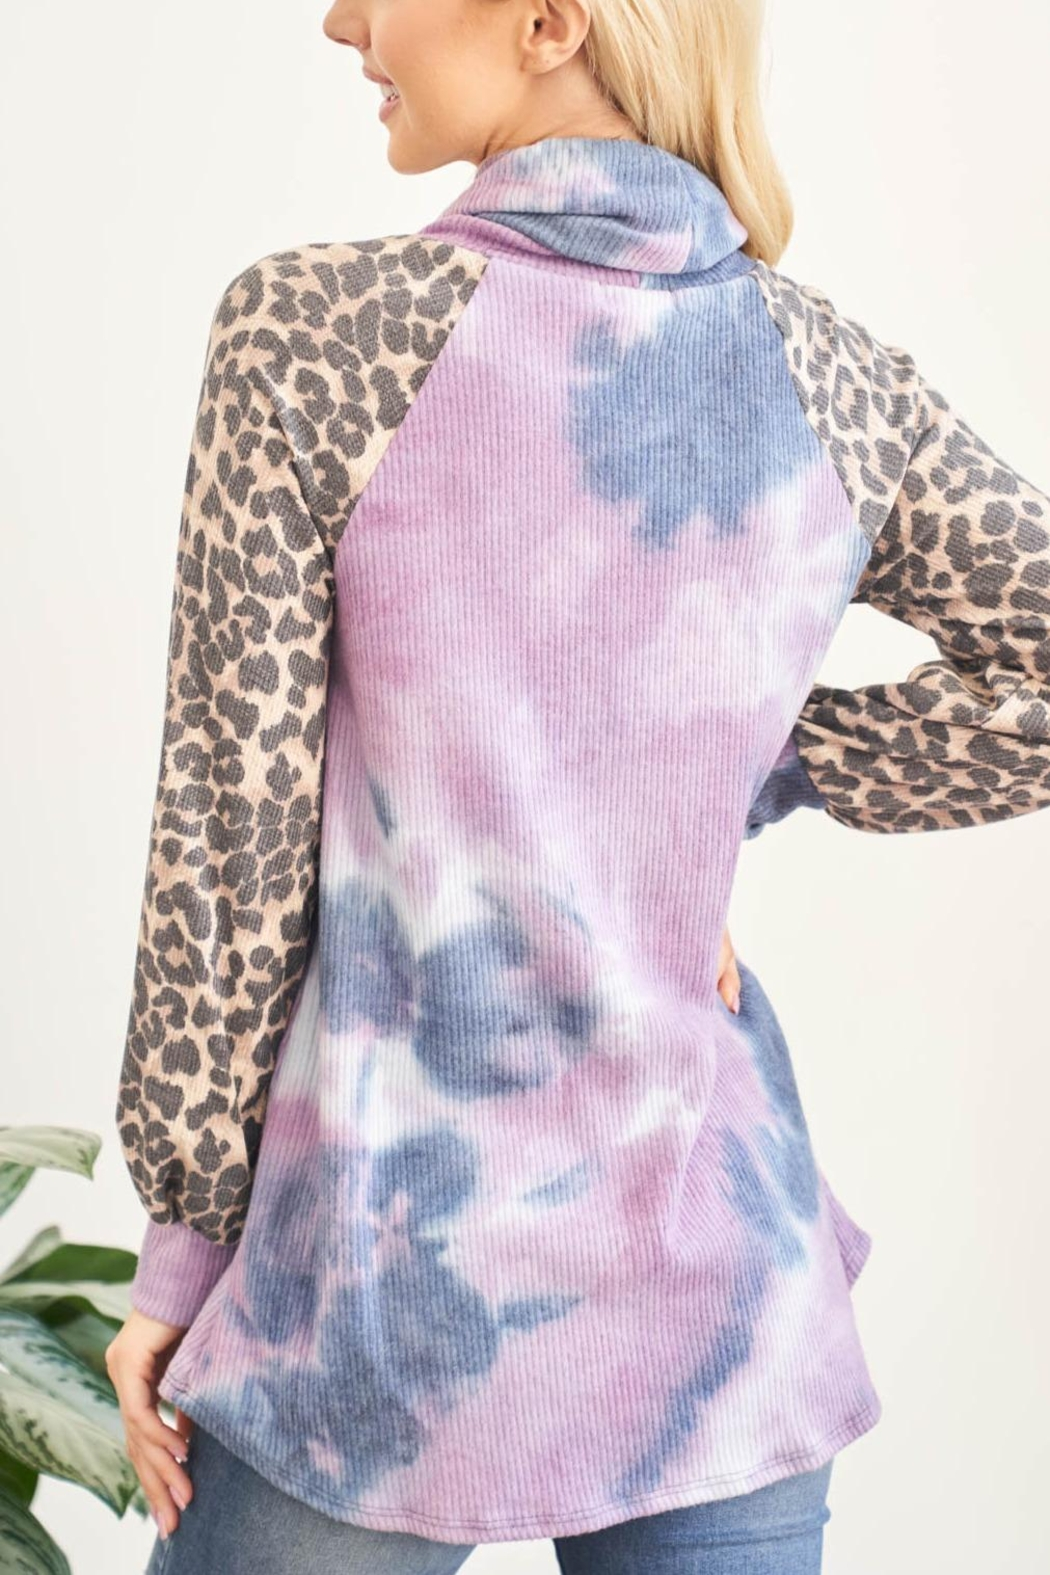 Riah Fashion Leopard-Sleeves-Tie-Dye-Cowl-Neck-Top-With-Self-Tie - Front Full Image